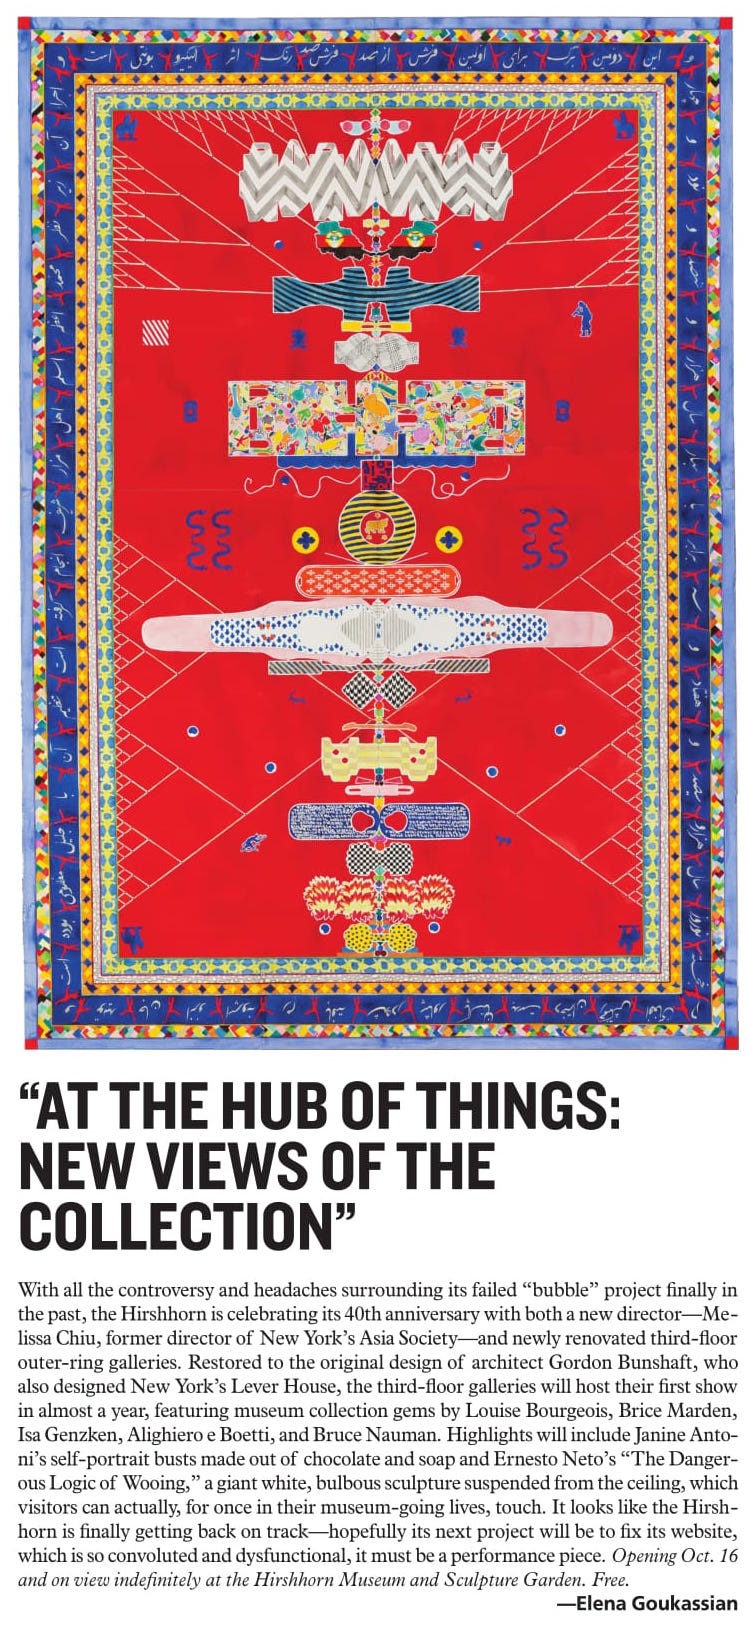 https://www.washingtoncitypaper.com/arts/article/13046060/at-the-hub-of-things-new-views-of-the-collection